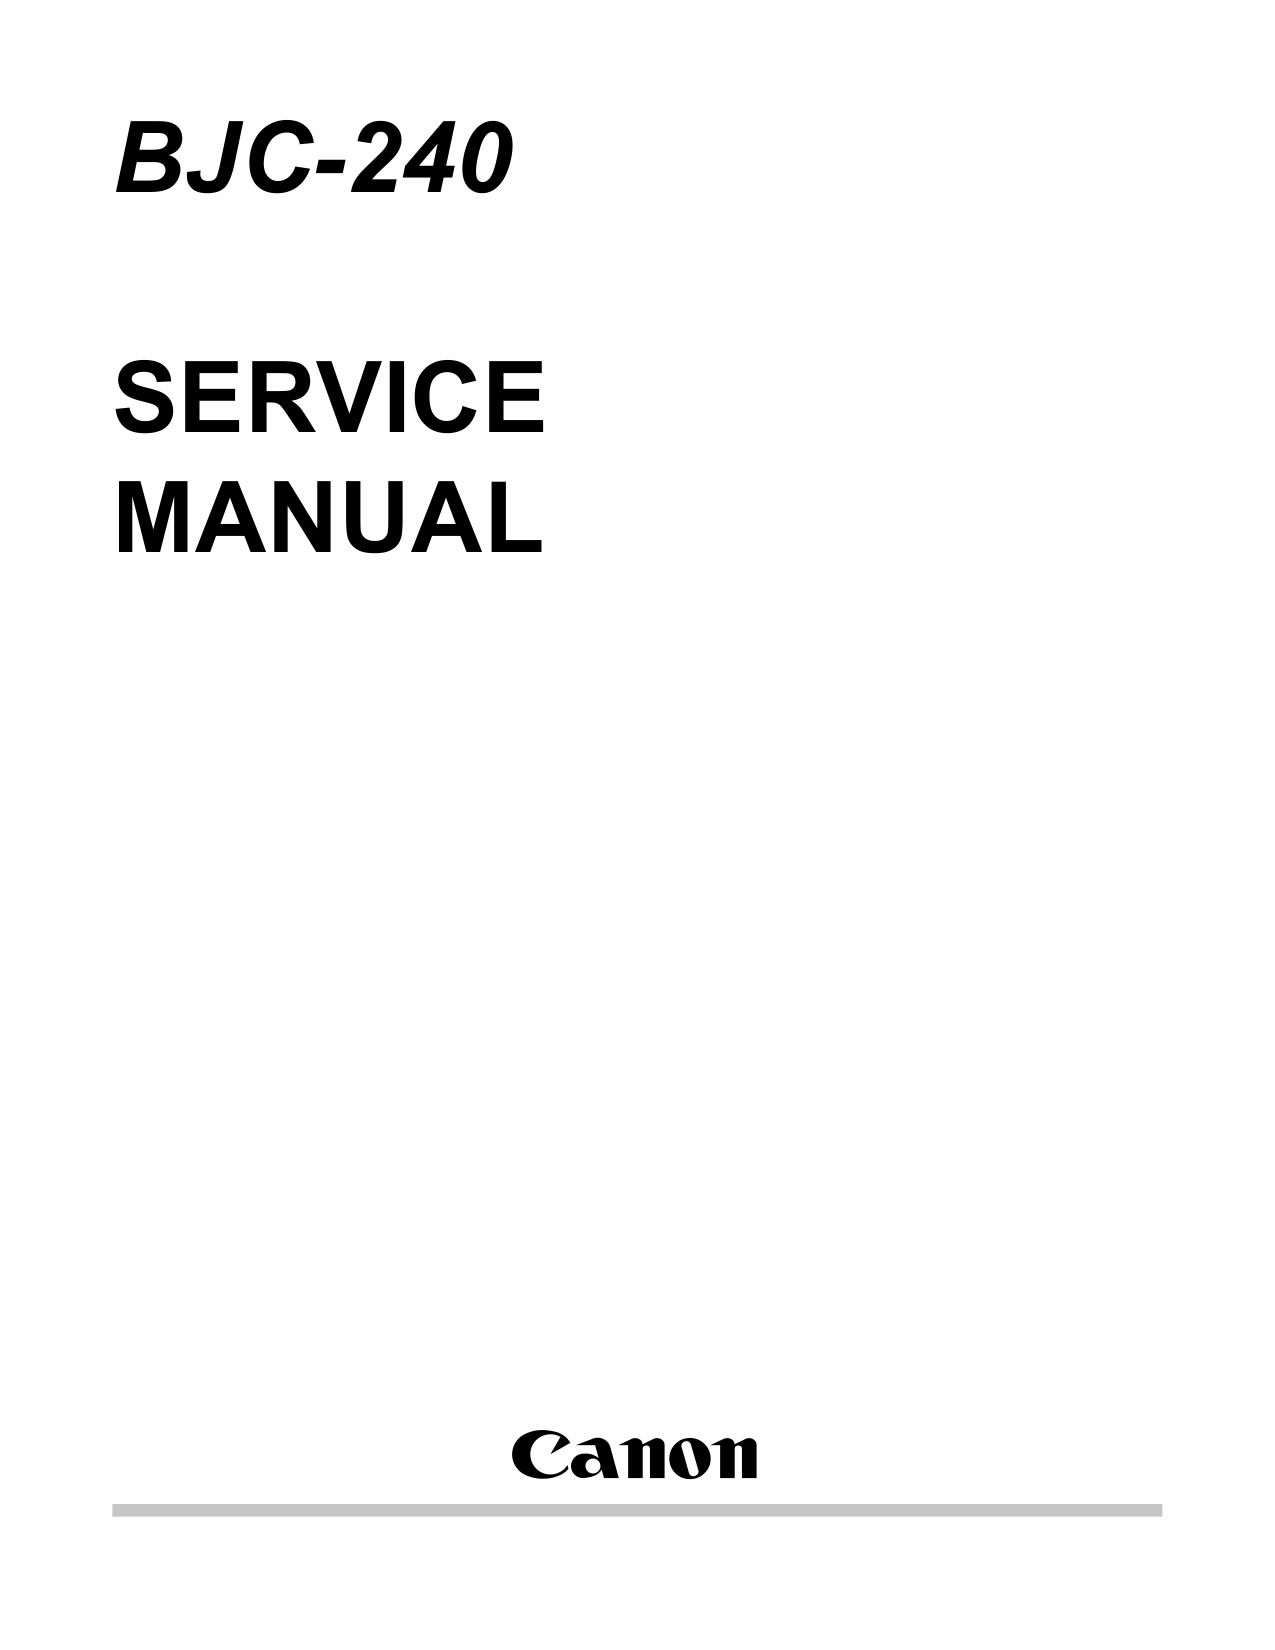 Canon BubbleJet BJC-240 Service Manual-1